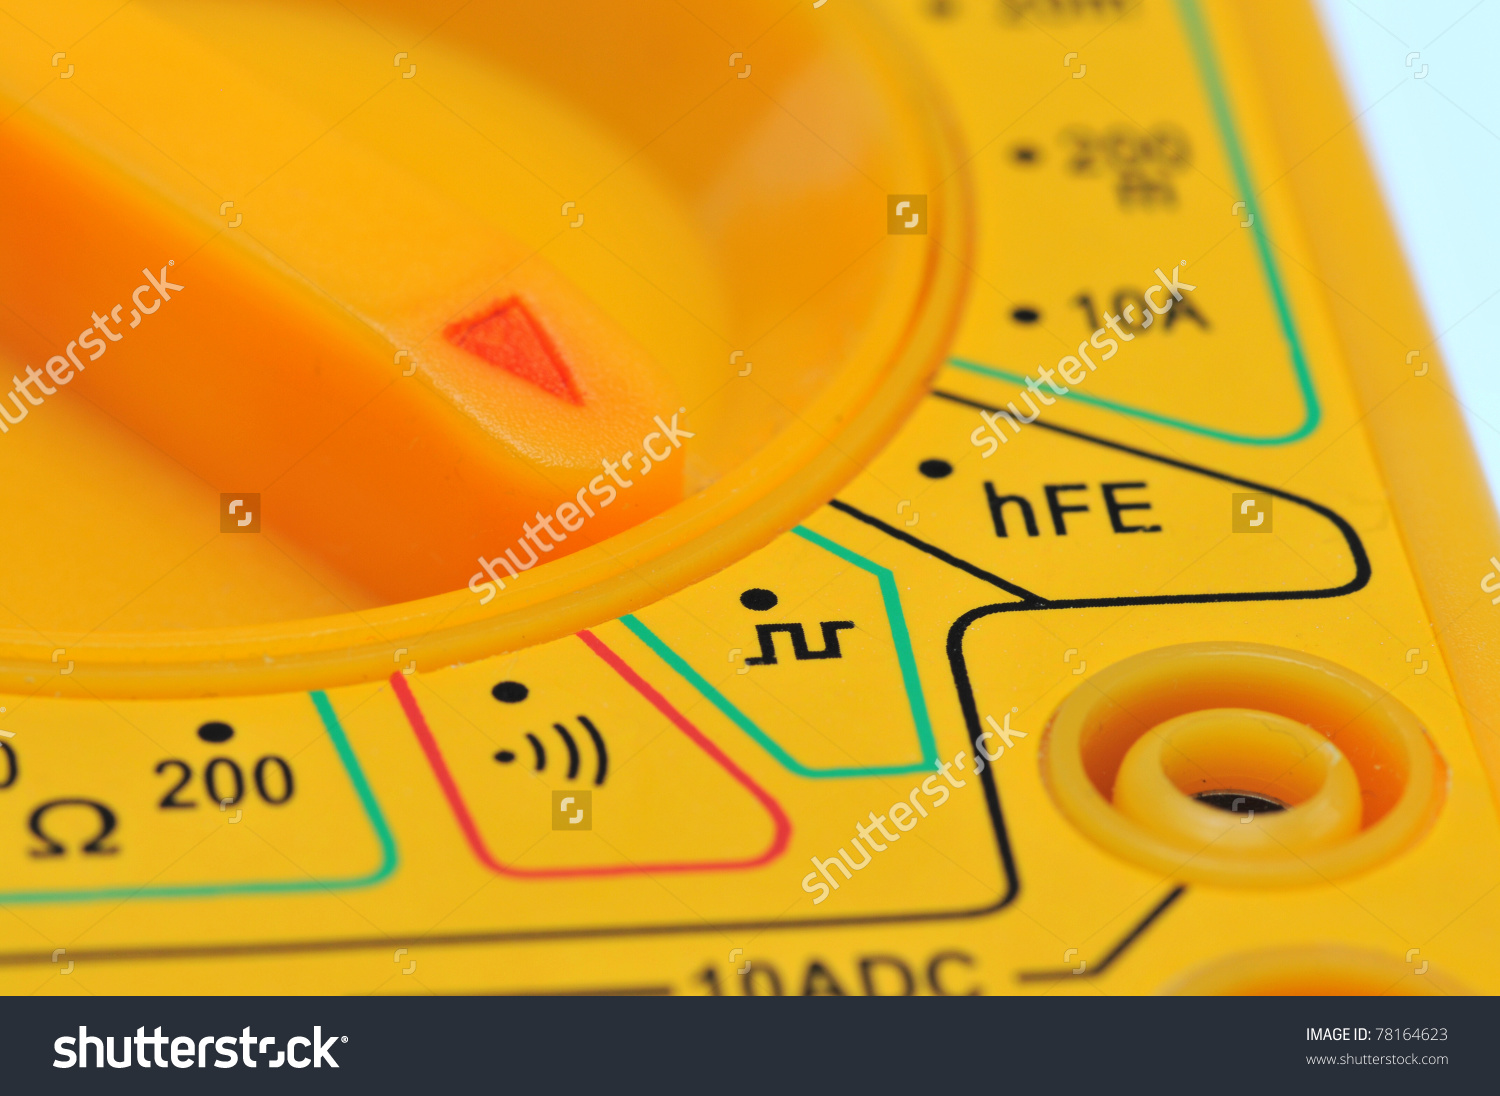 Clipart signal generator clipground dial knob on multimeter pointing symbol stock photo 78164623 buycottarizona Image collections